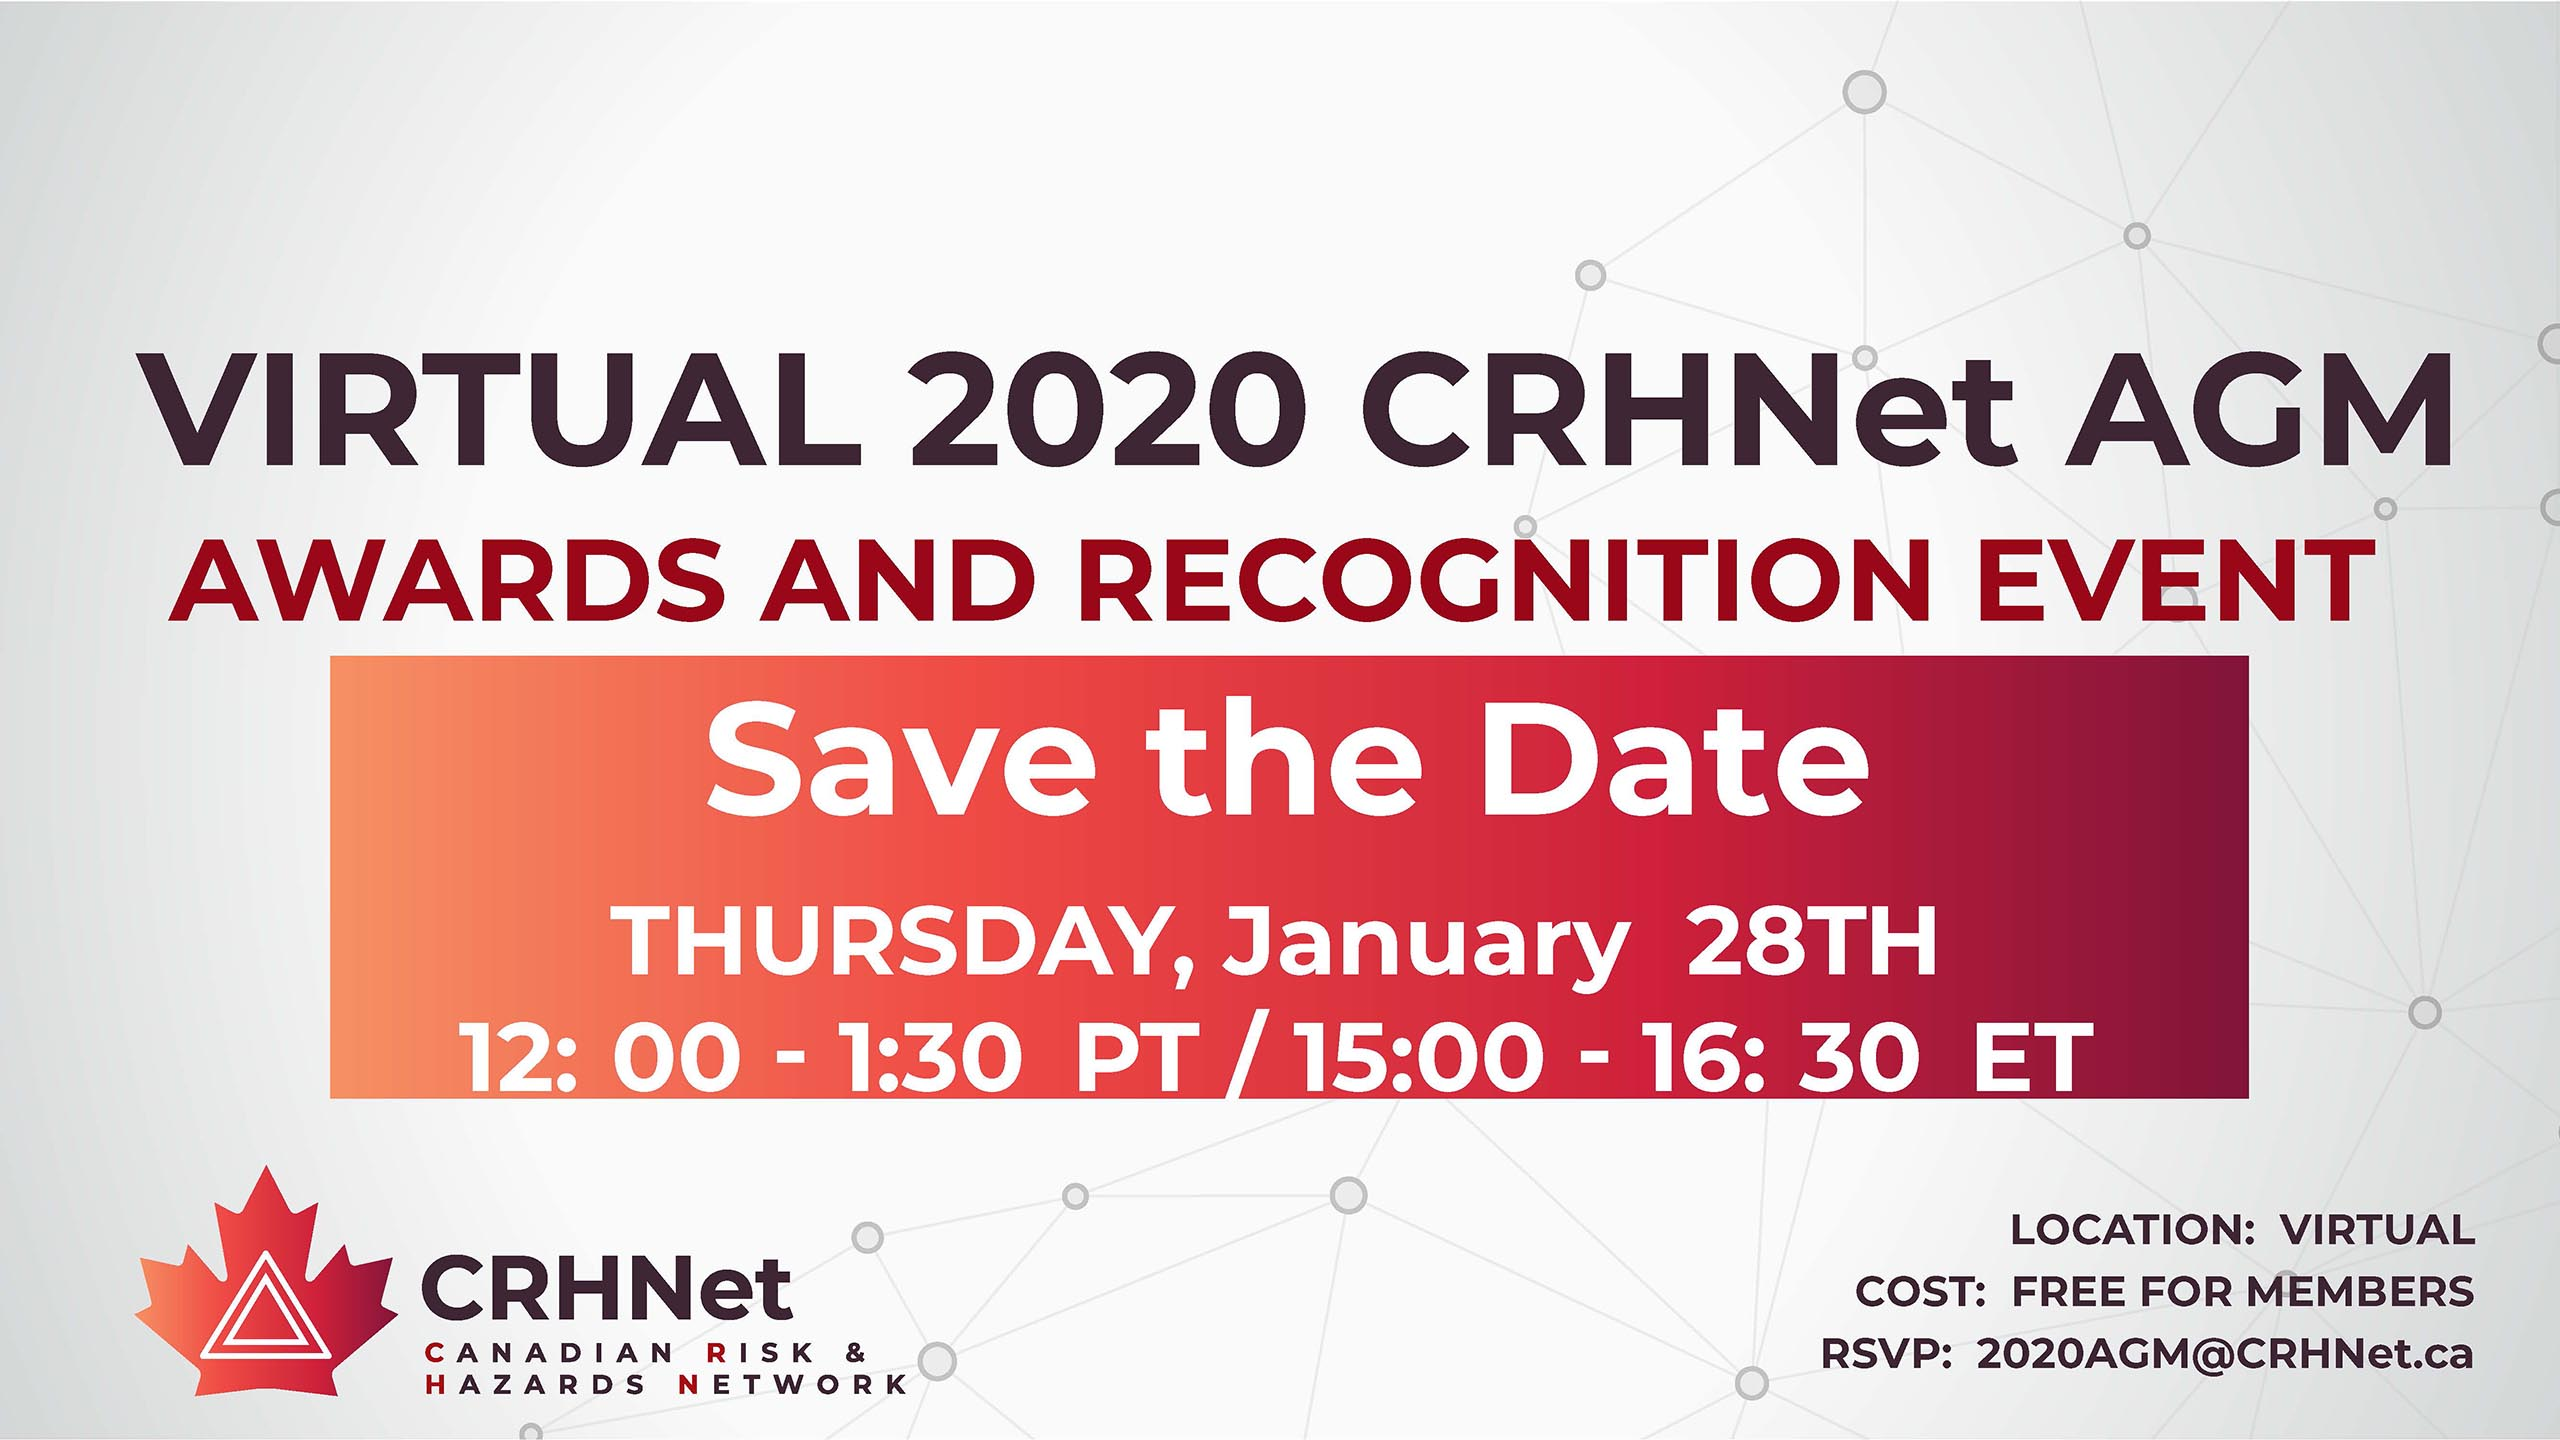 Virtual 2020 CRHNet AGM Awards & Recognition Event